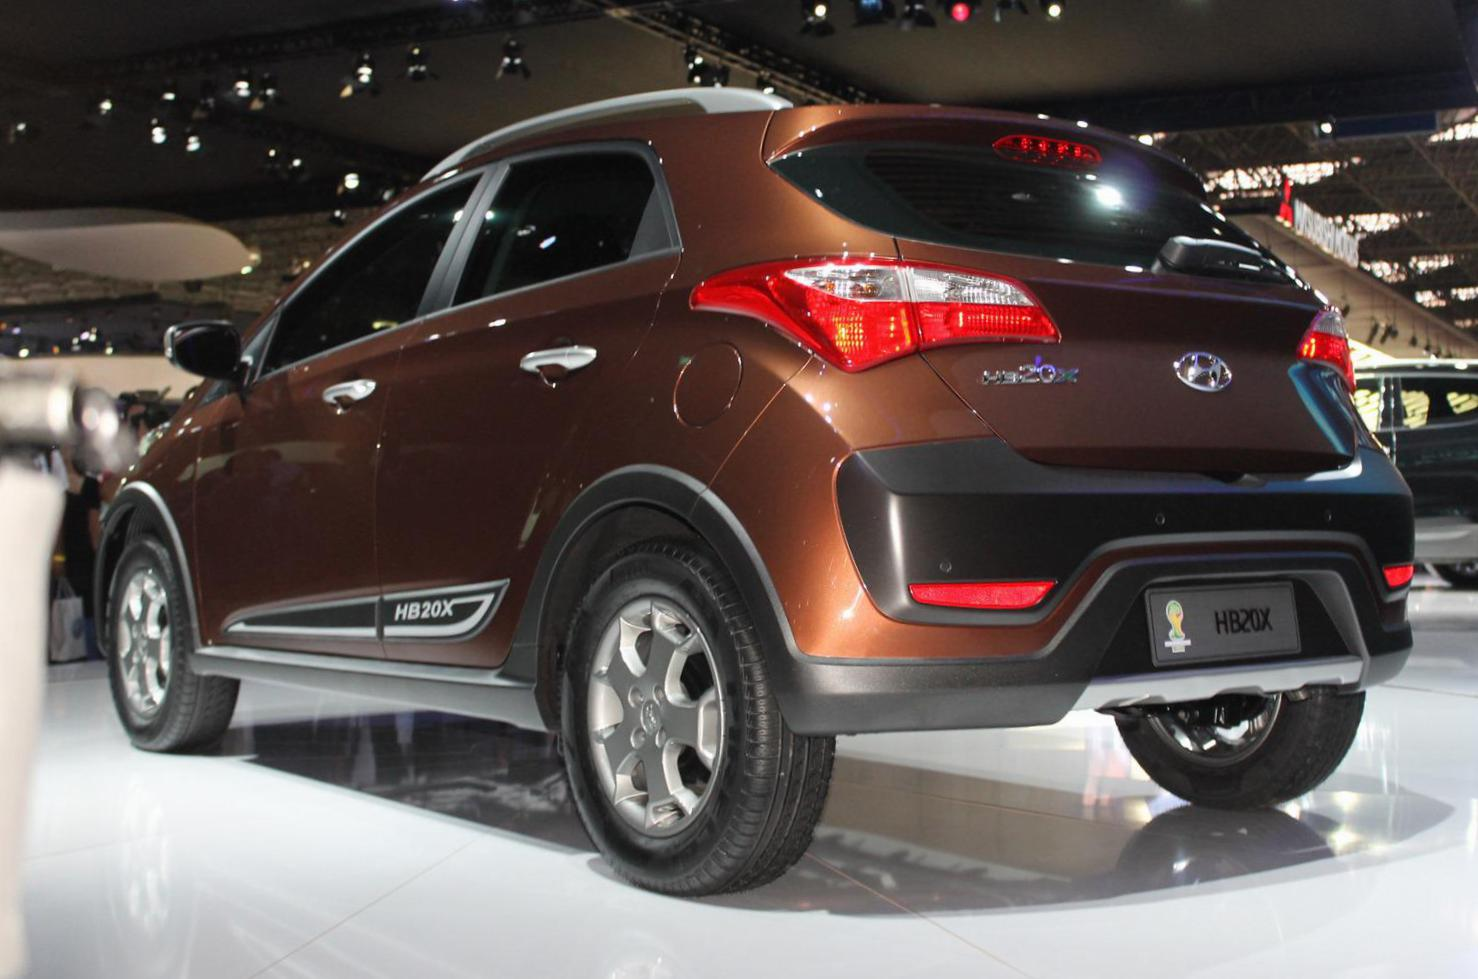 HB20X Hyundai Specification 2013